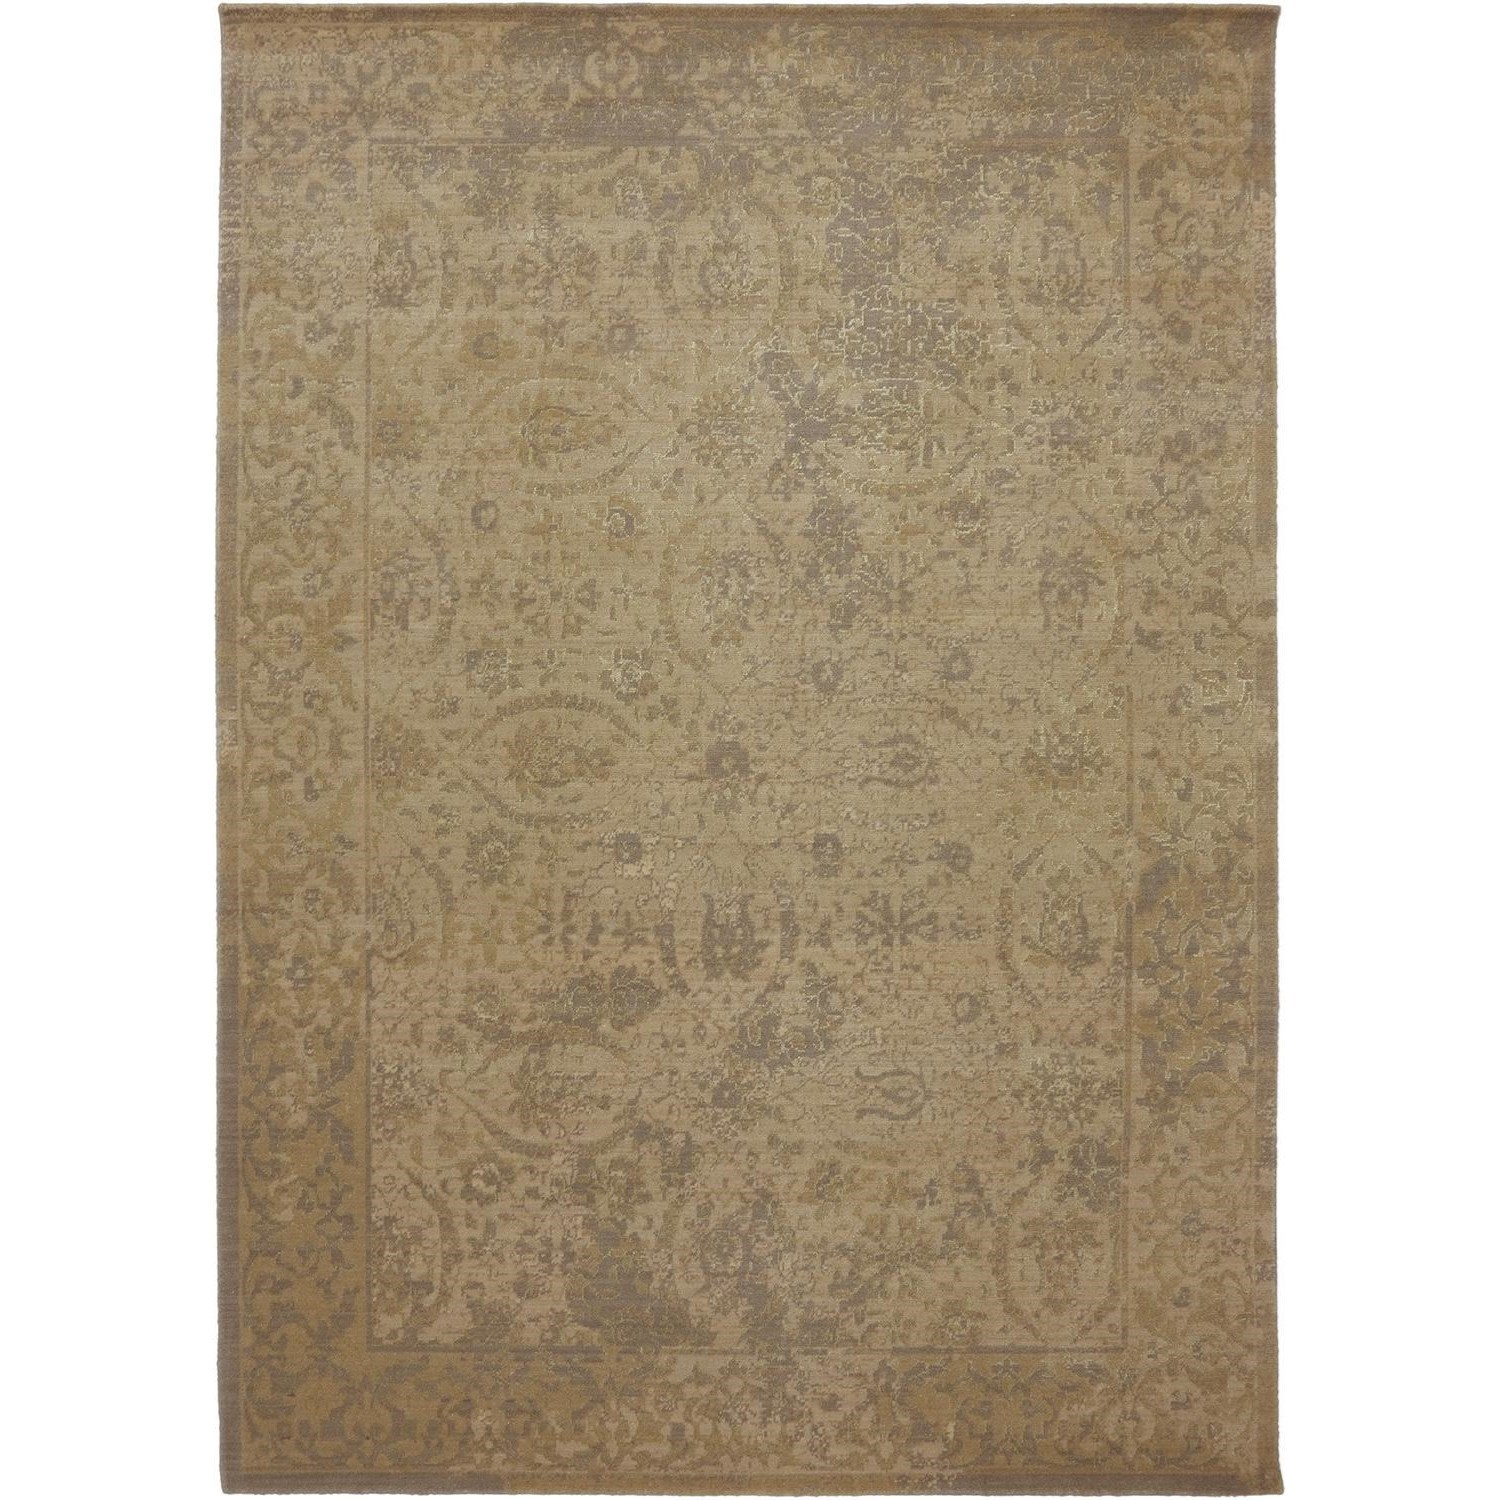 Karastan Rugs Evanescent 5'6x8' Terni Light Rug - Item Number: RG818 443 066096